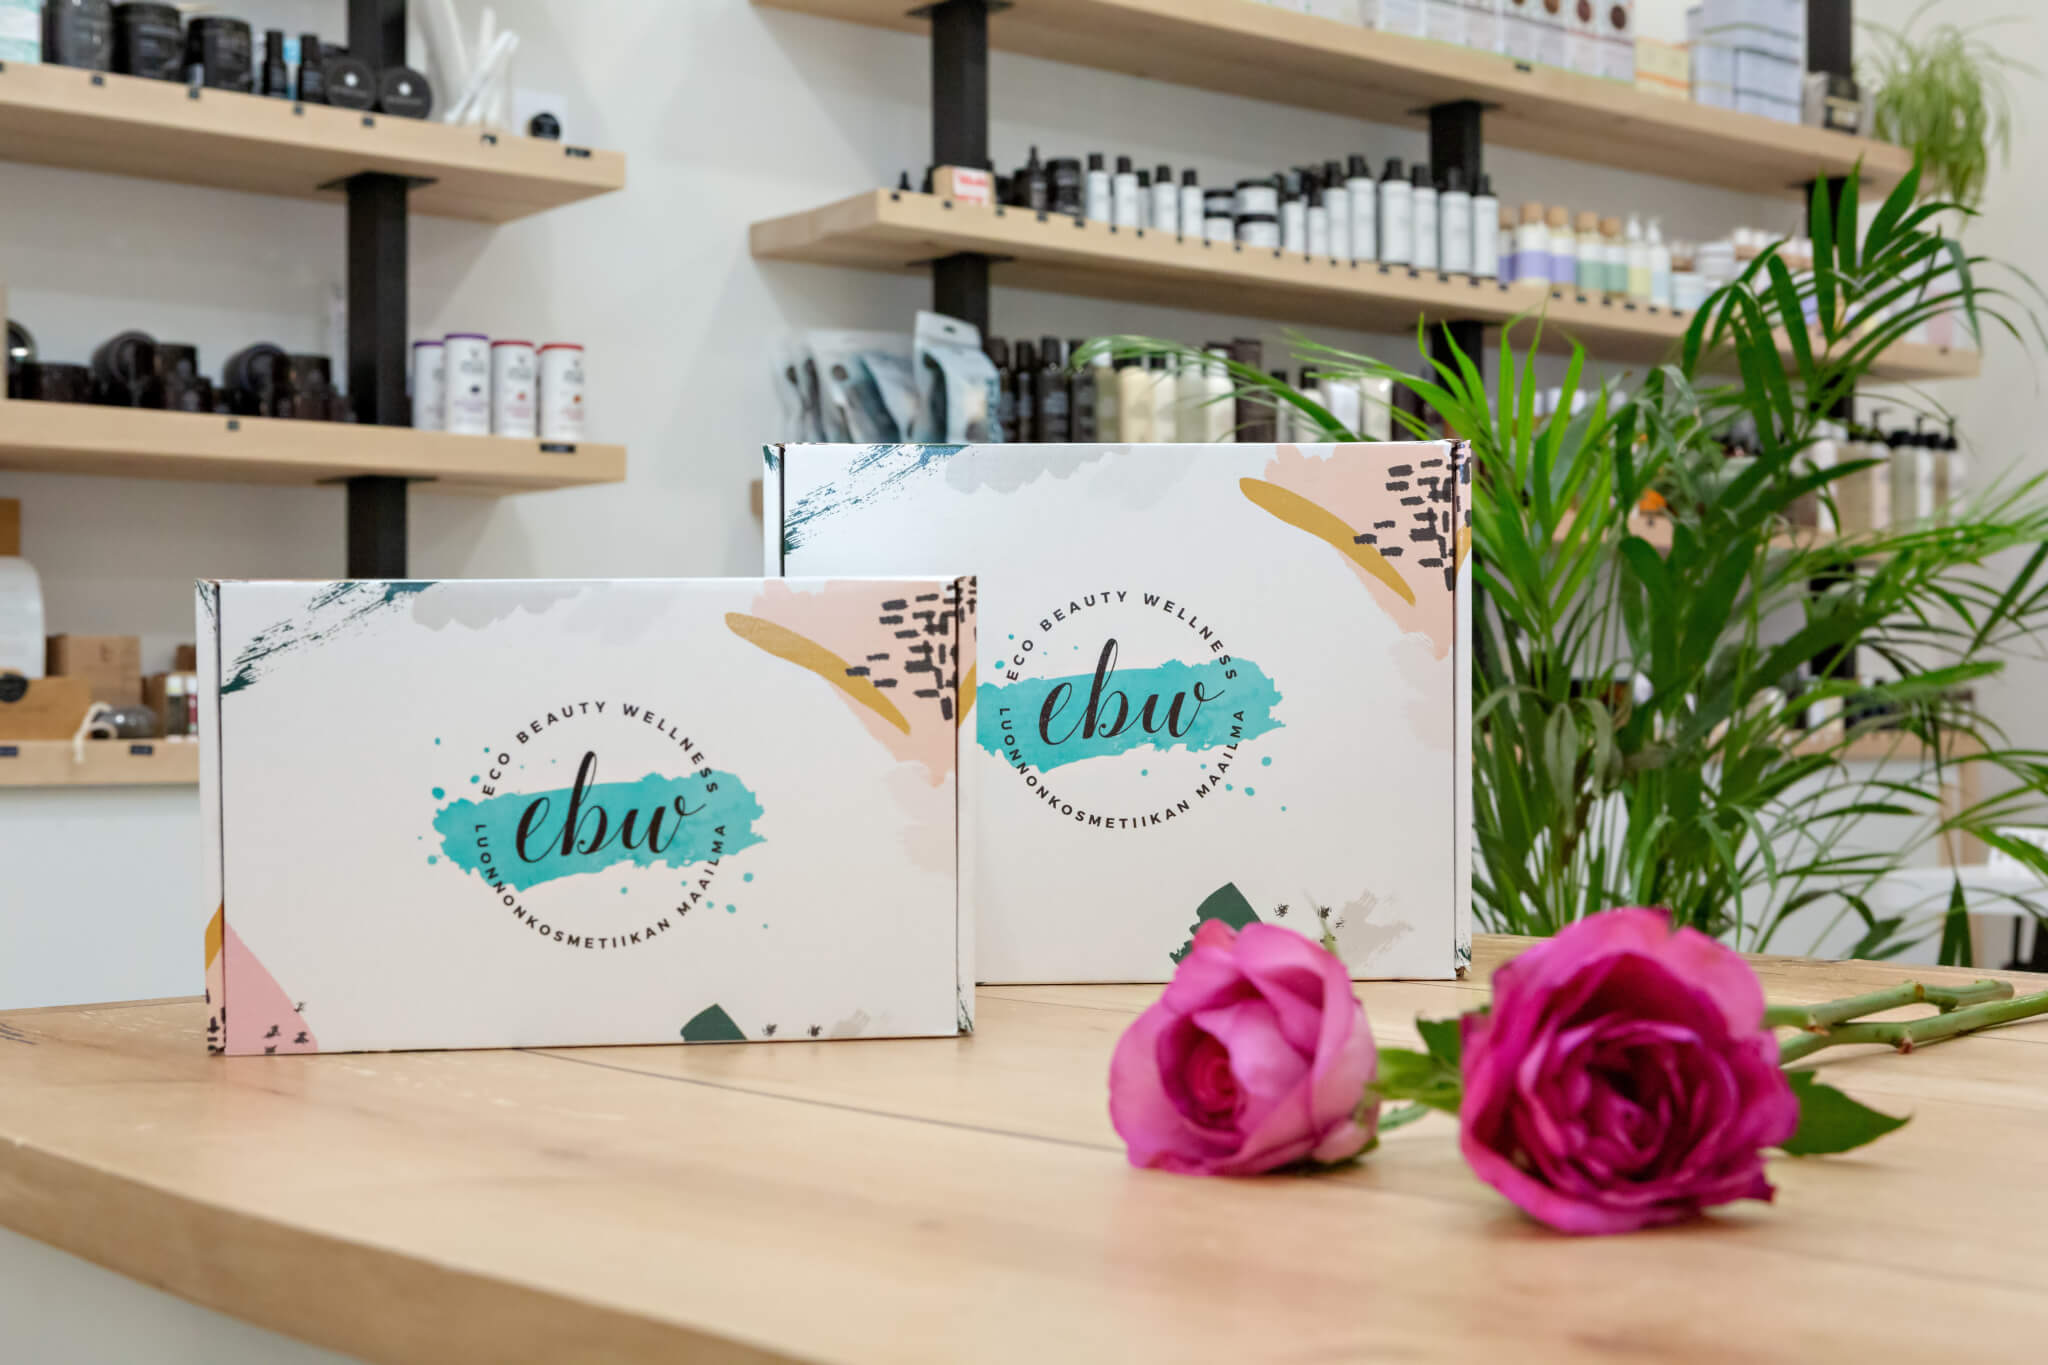 la paqueteria de eco beauty wellness